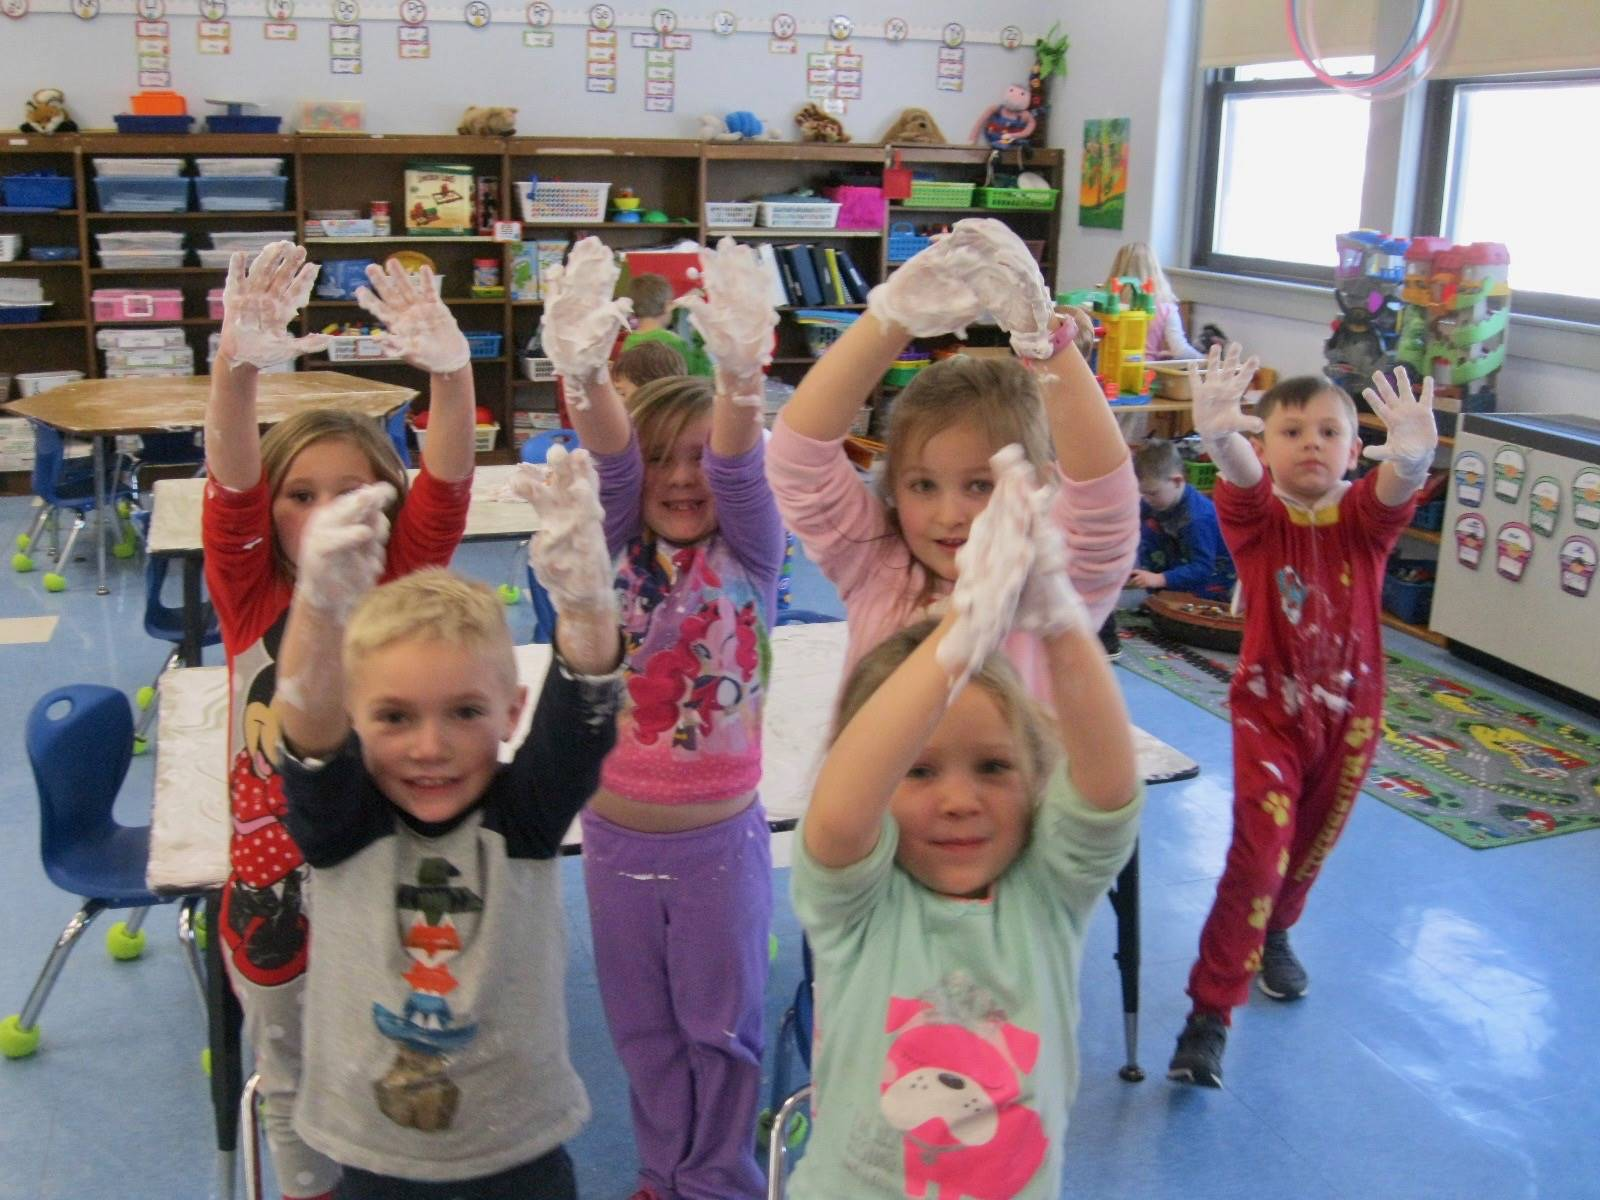 6 students show hands with shaving cream.